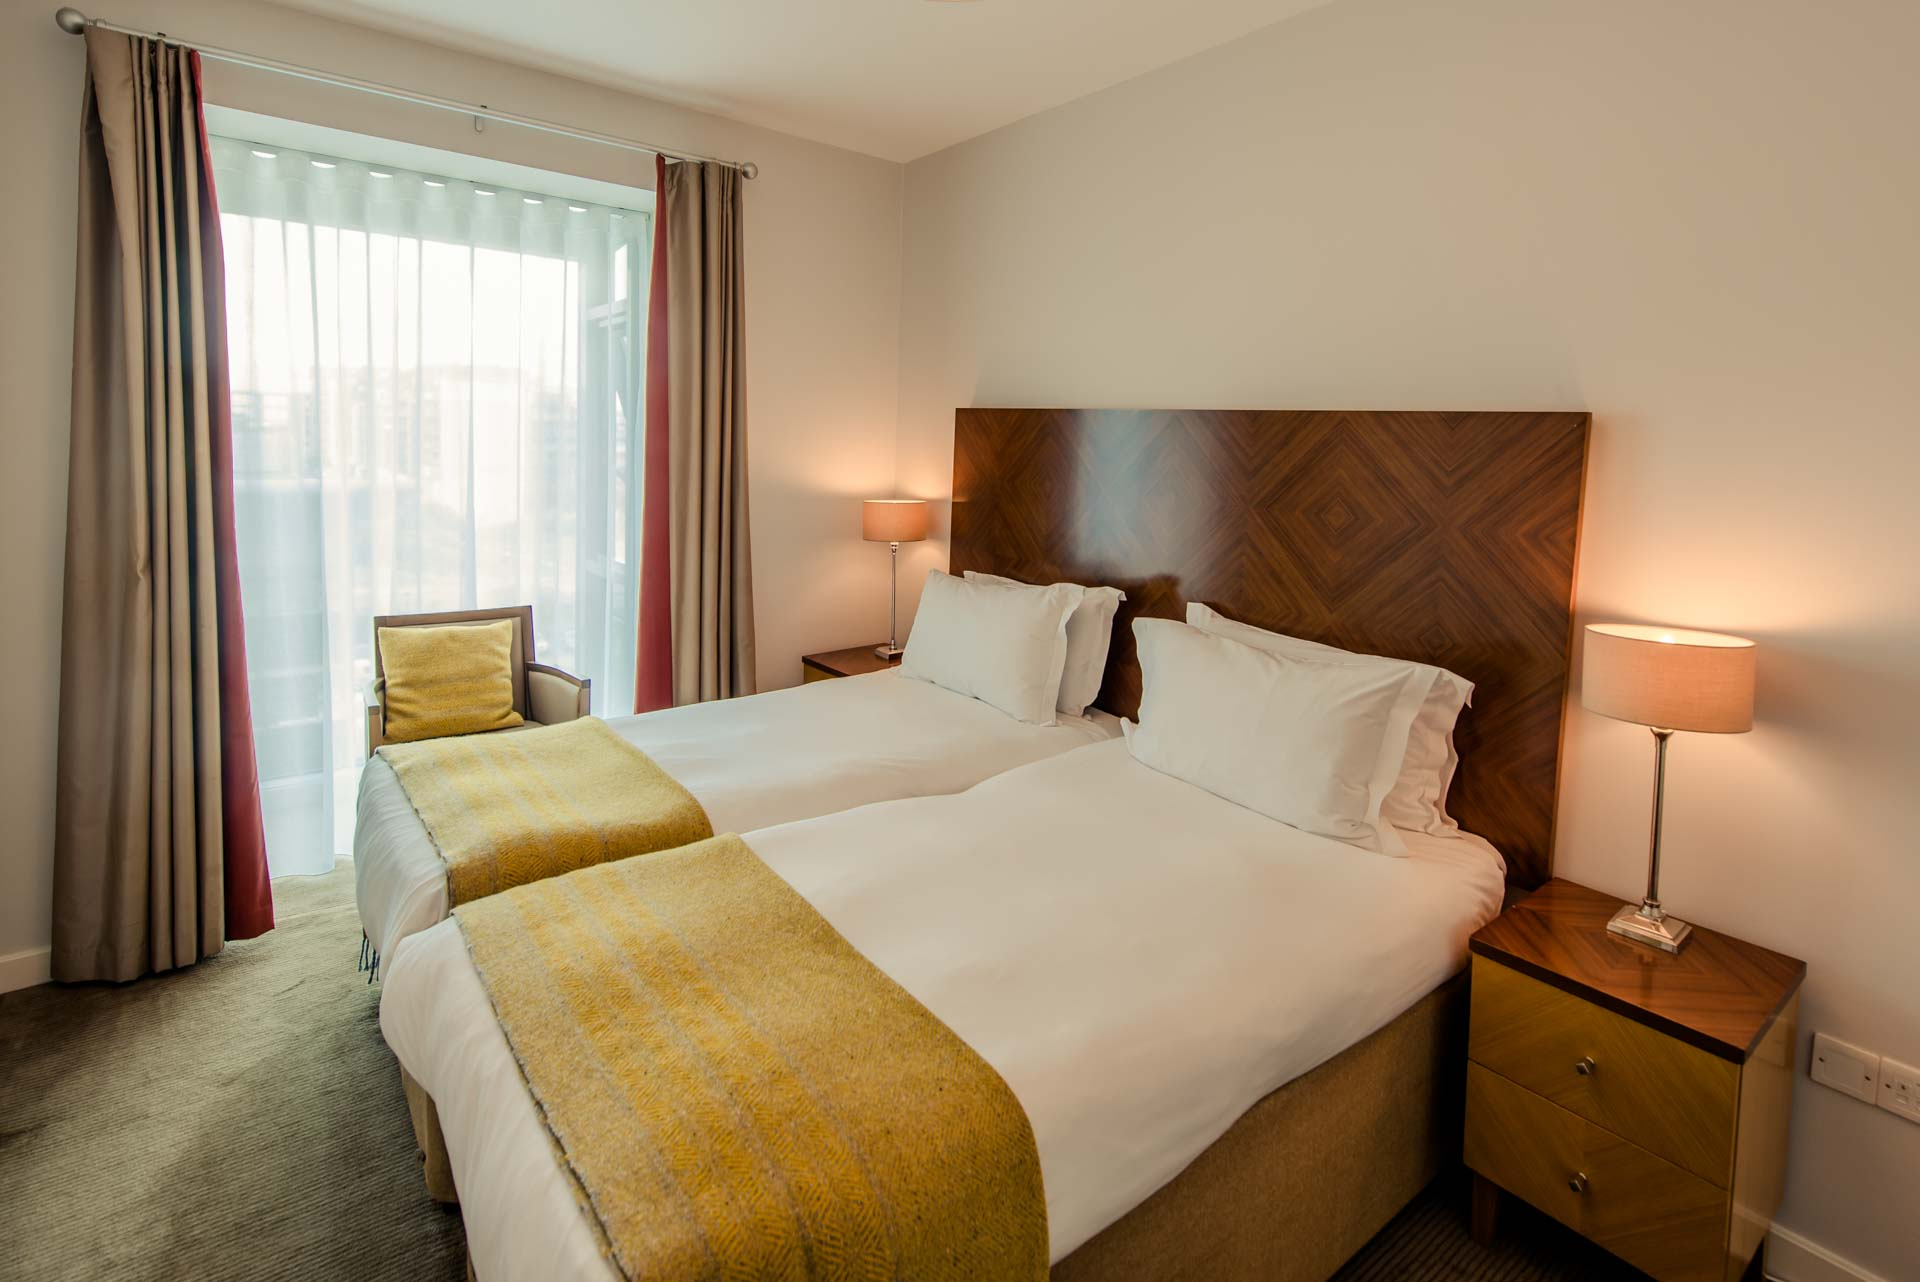 Twin bedroom at Premier Suites Dublin Sandyford, Sandyford, Dublin